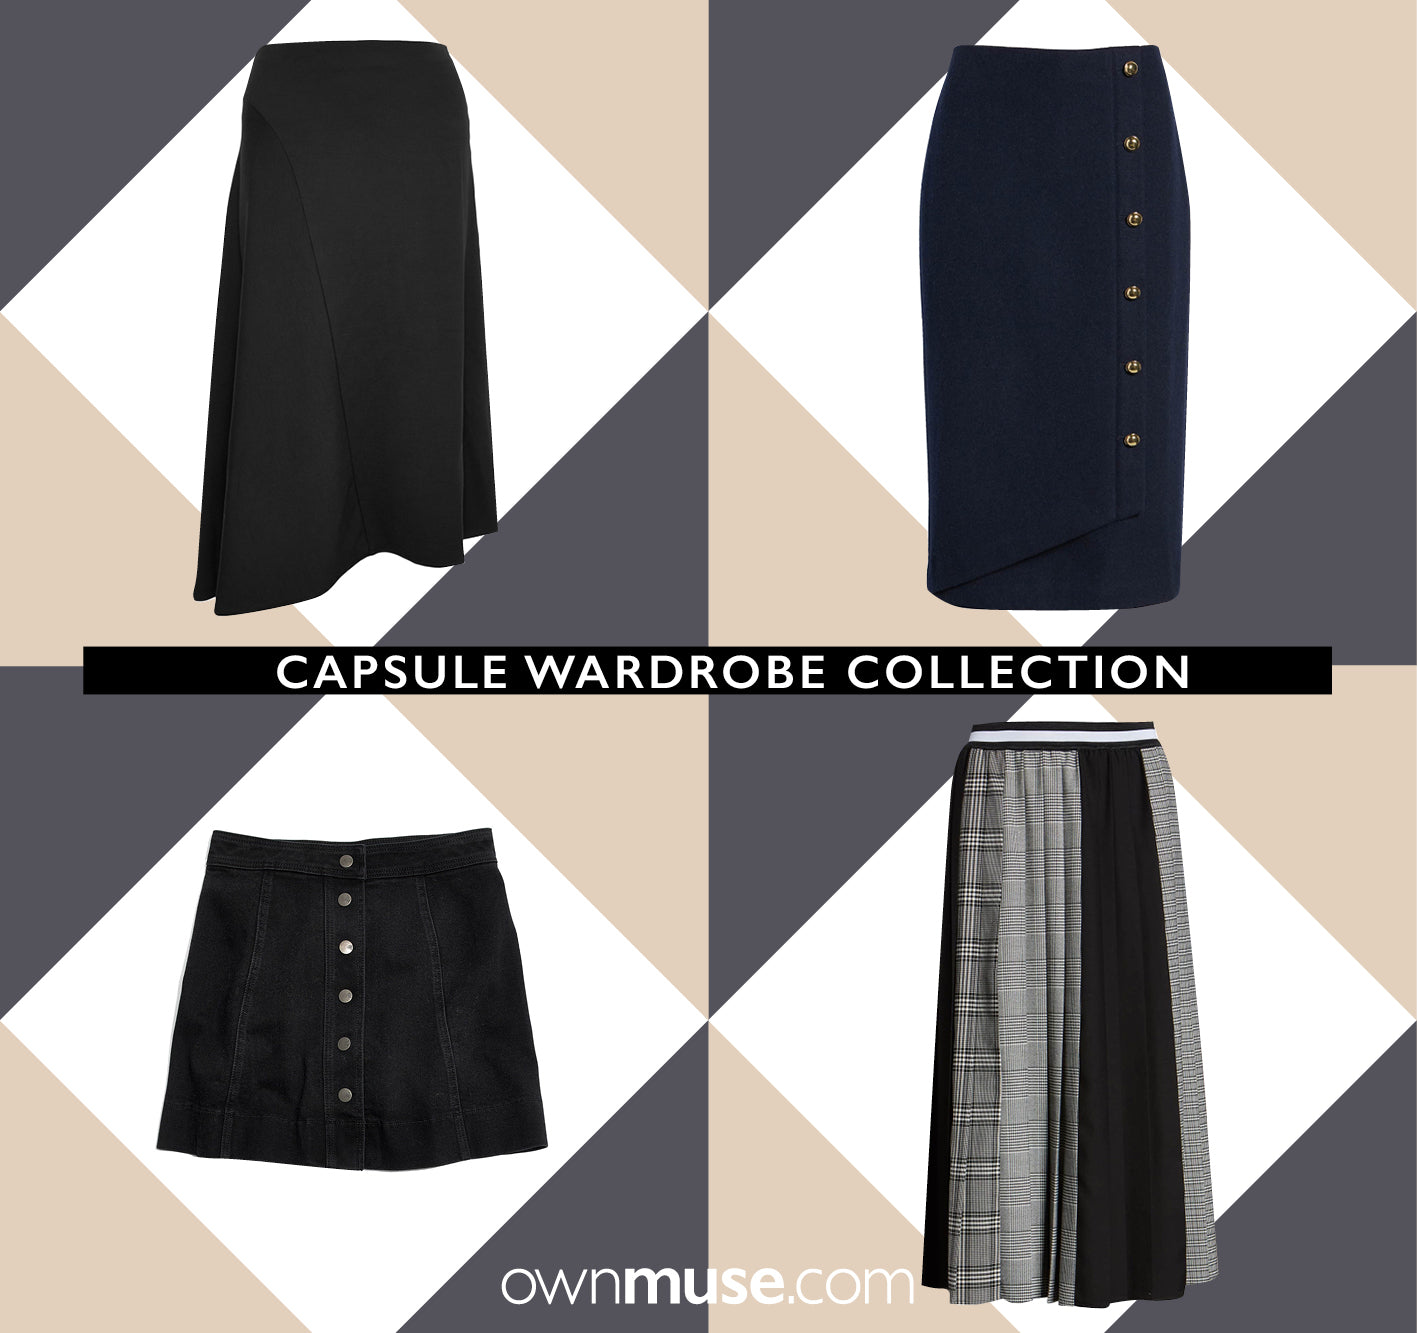 Capsule wardrobe collection pleated denim asymmetric black blue grey gray skirts